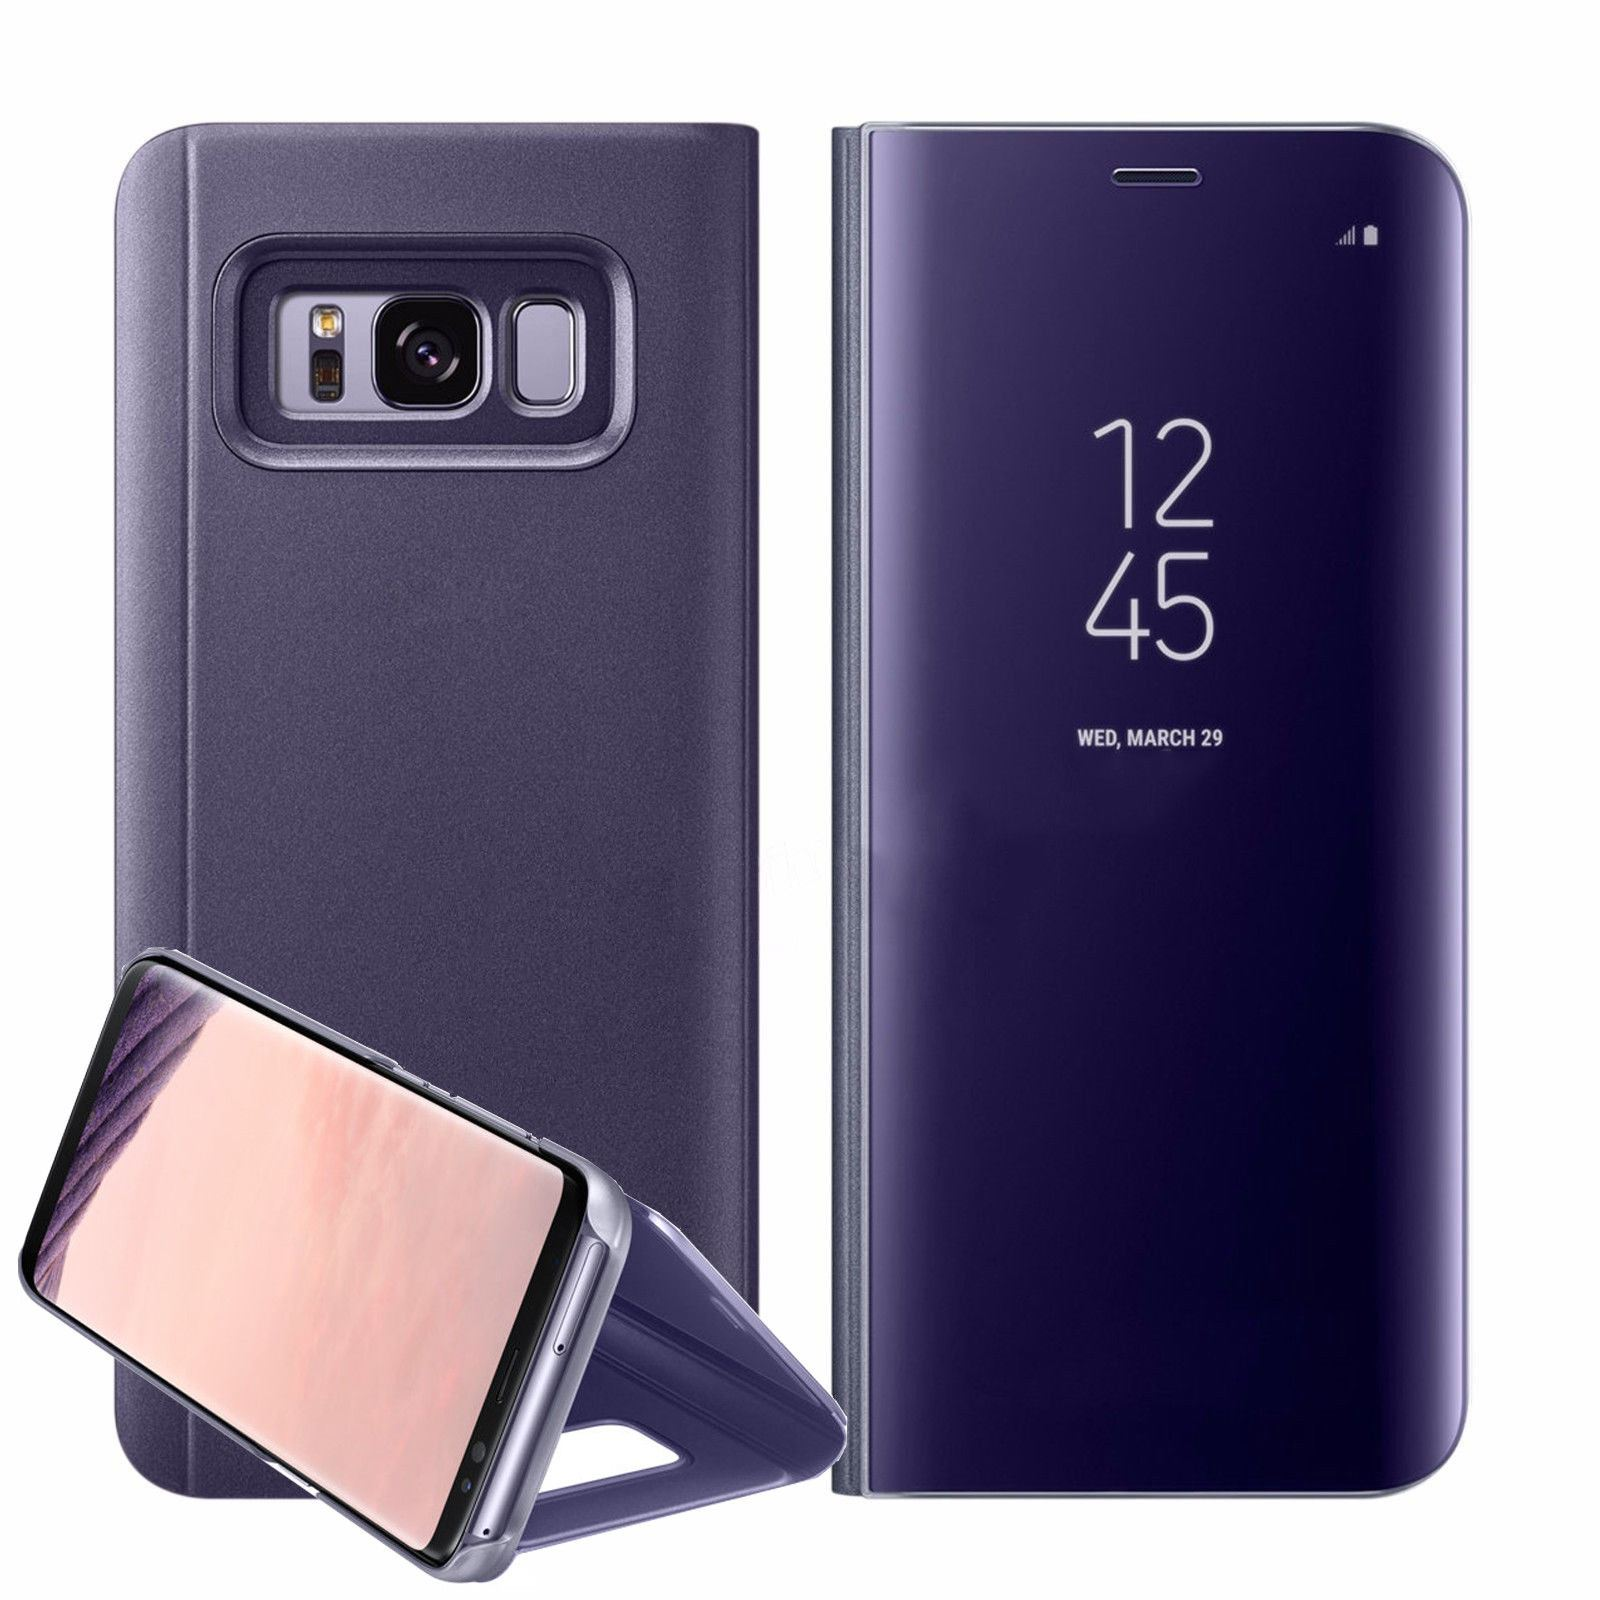 New-Samsung-Galaxy-S7-S8-S9-Smart-View-Mirror-Leather-Flip-Stand-Case-Cover